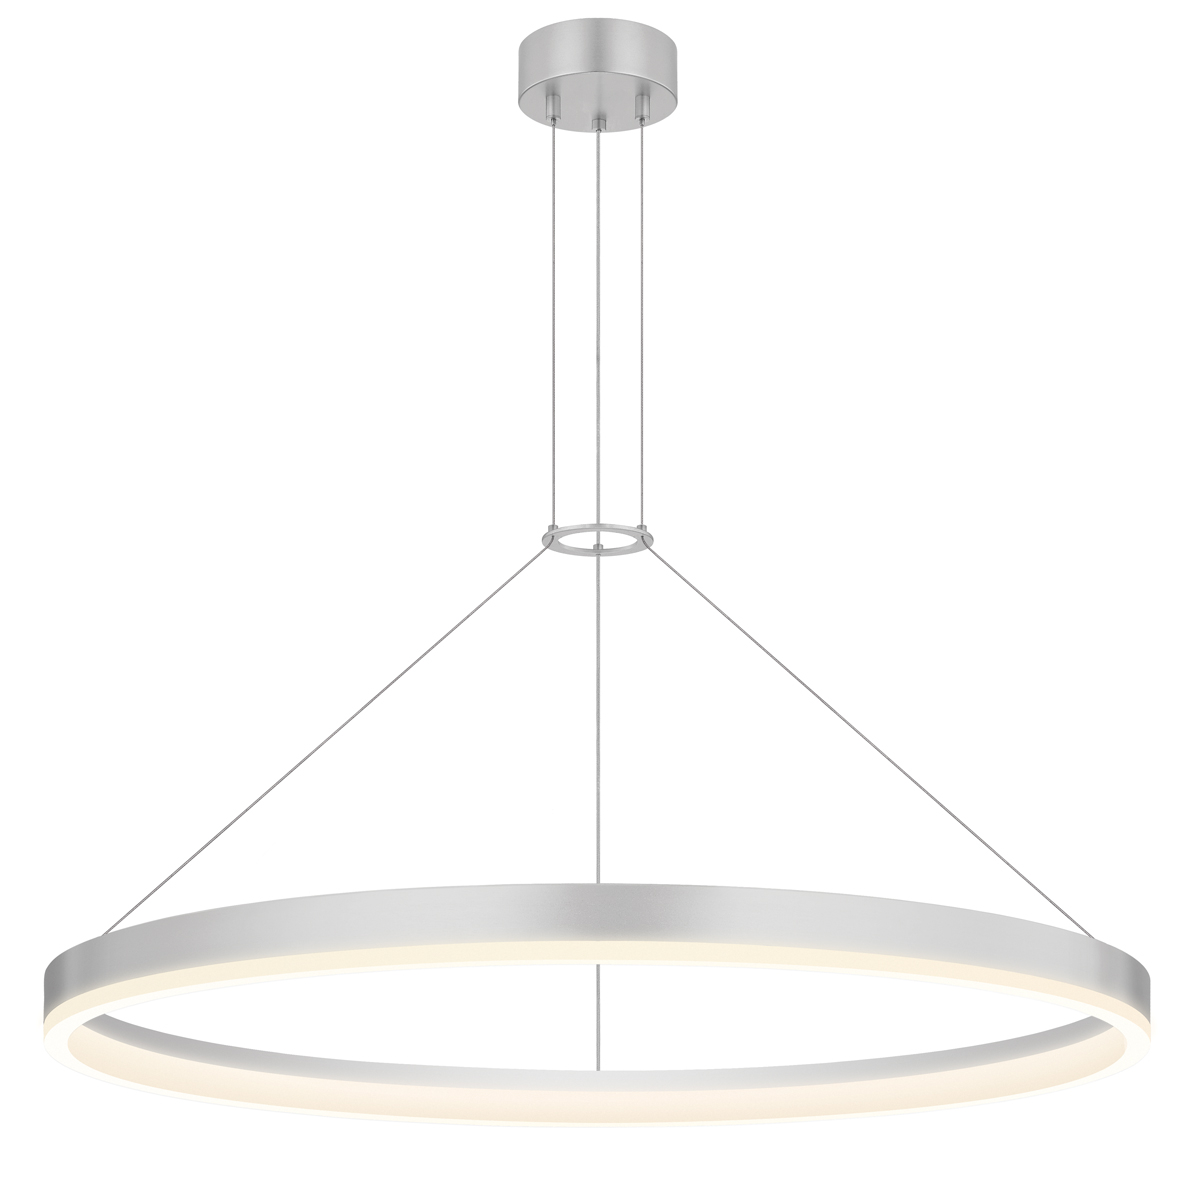 Led Pendant From The Corona Collection By Sonneman 231716